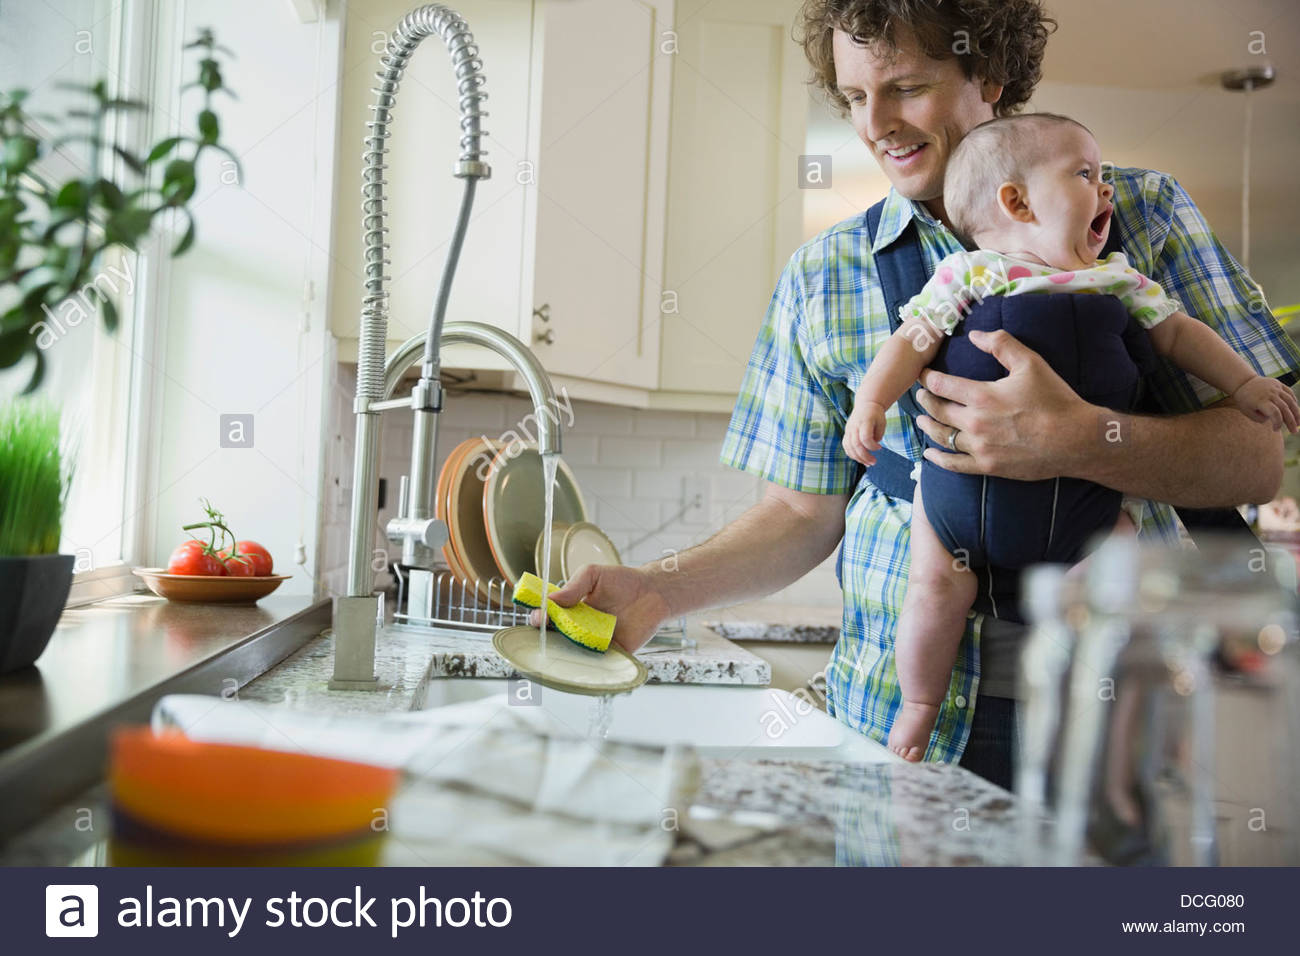 Father washing dishes while carrying baby girl - Stock Image